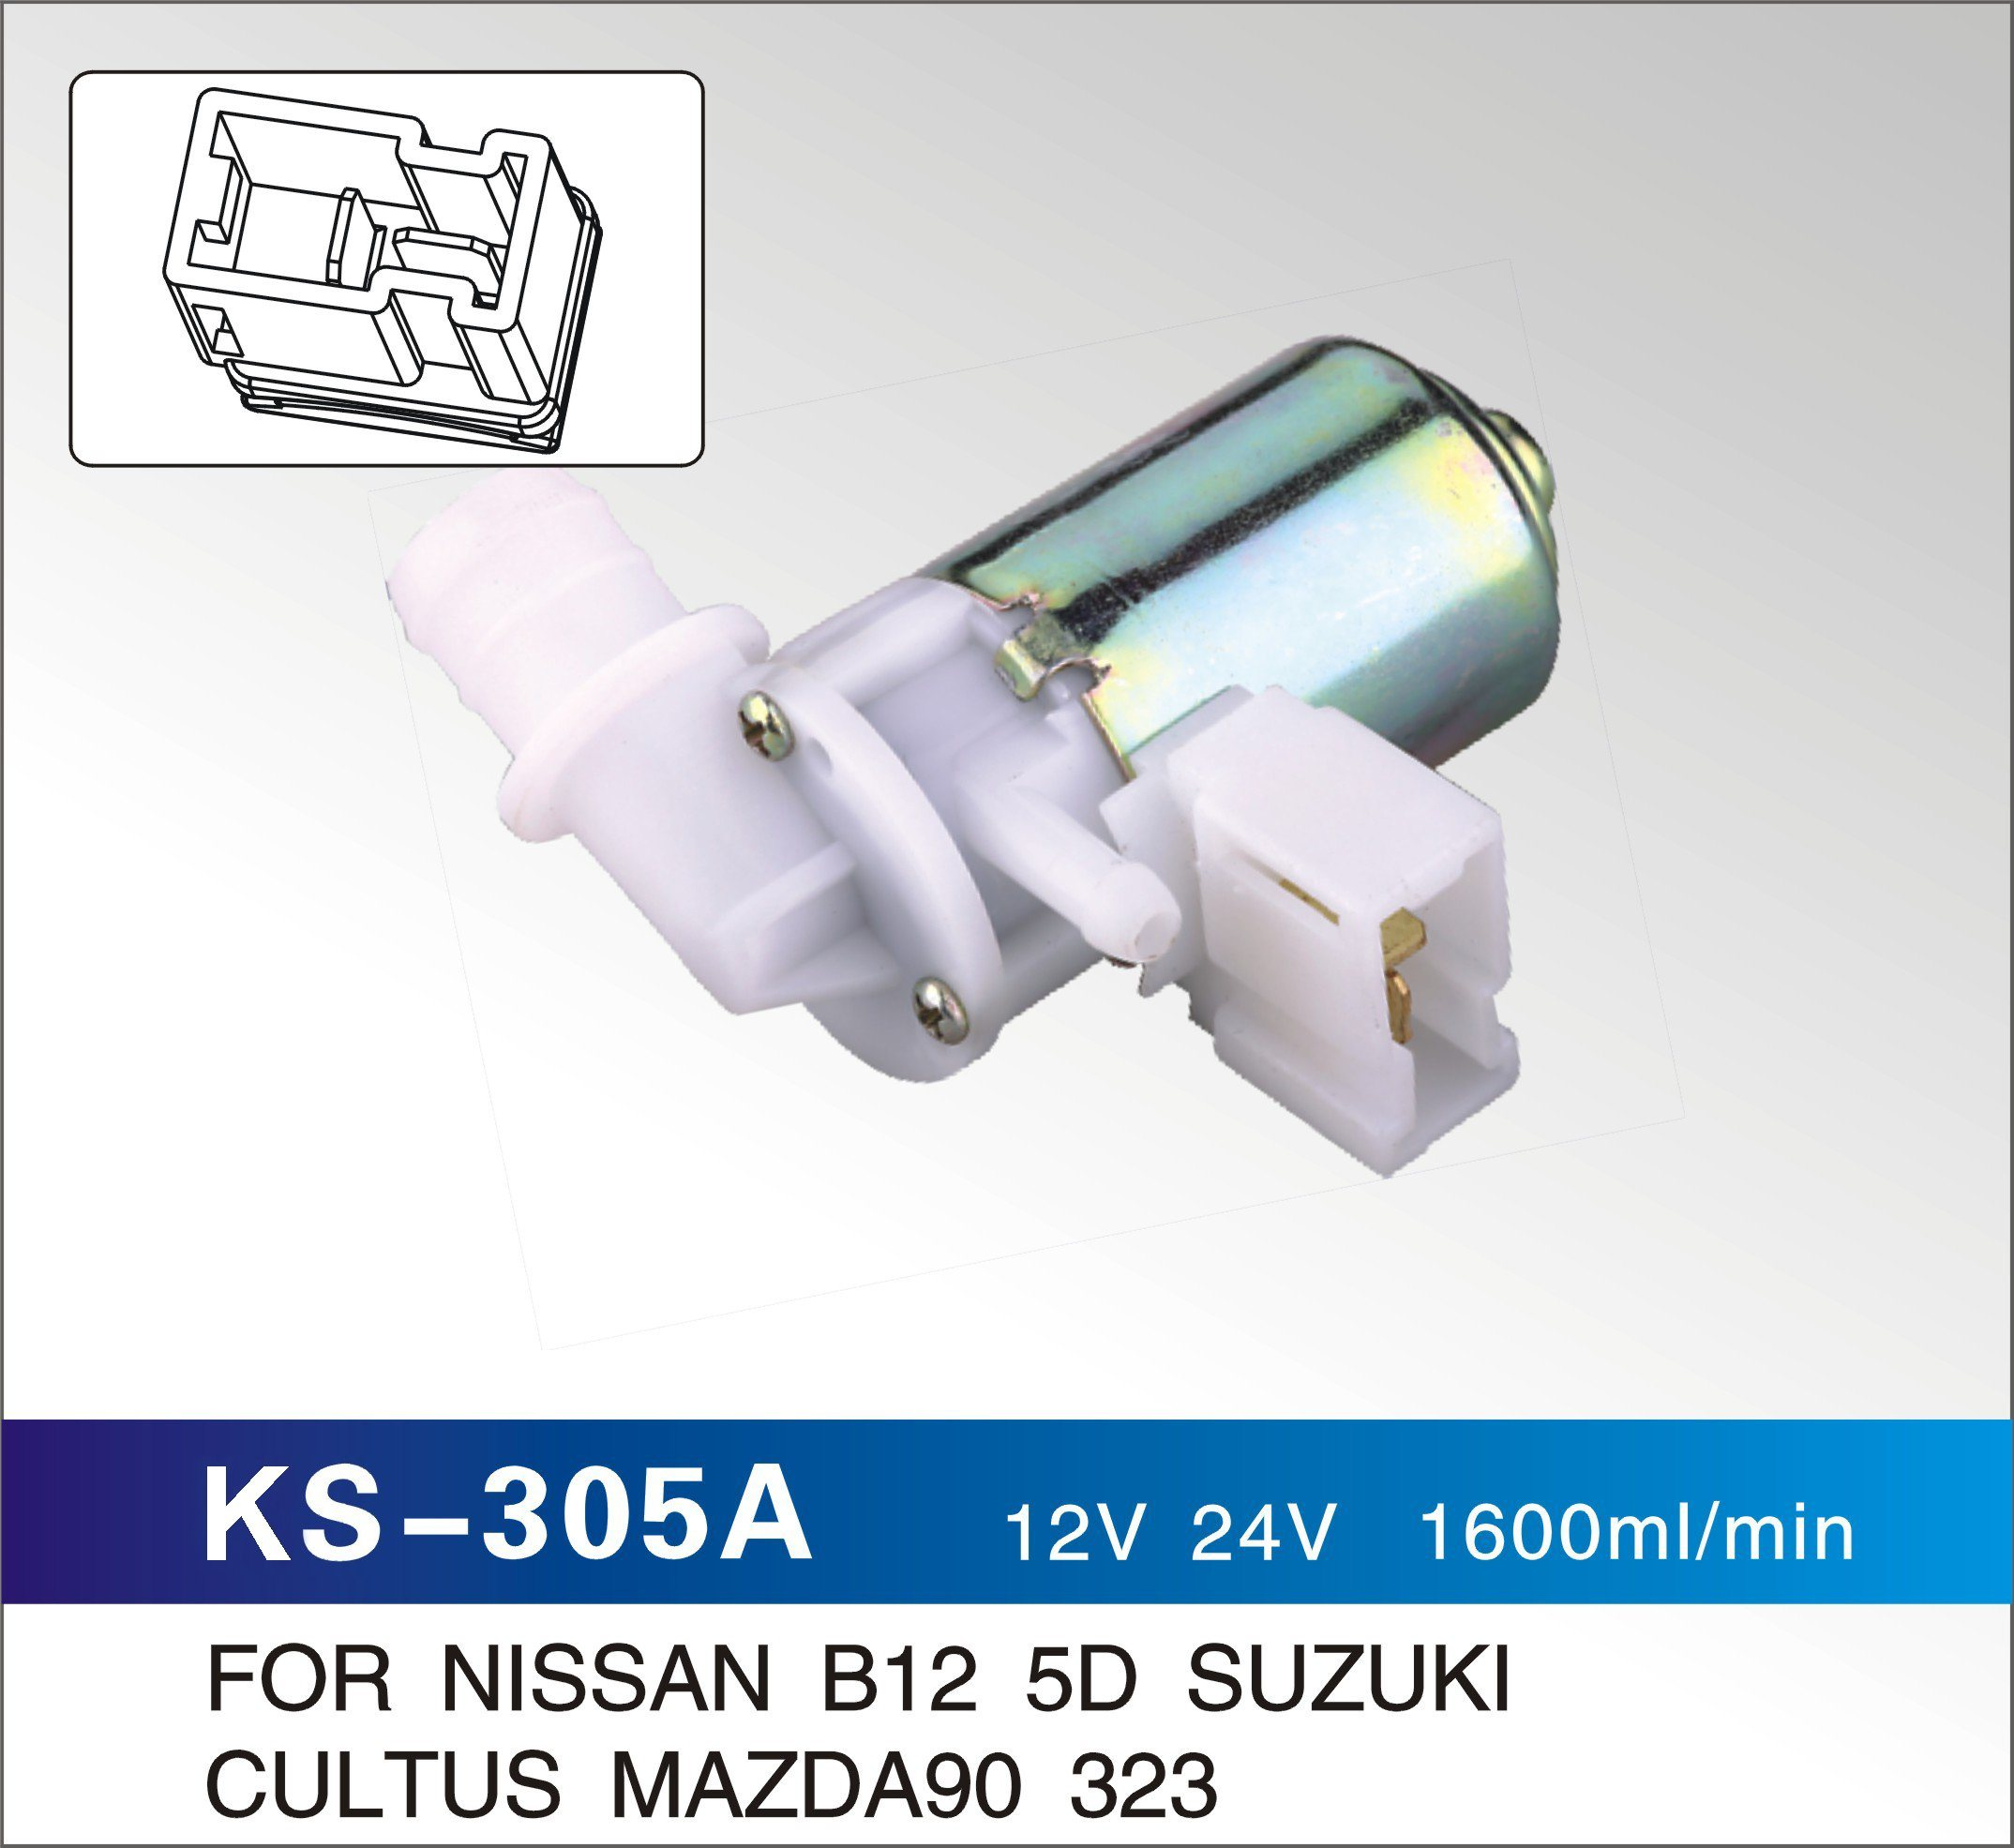 Nissan Sentra Service Manual: Wiper and washer fuse